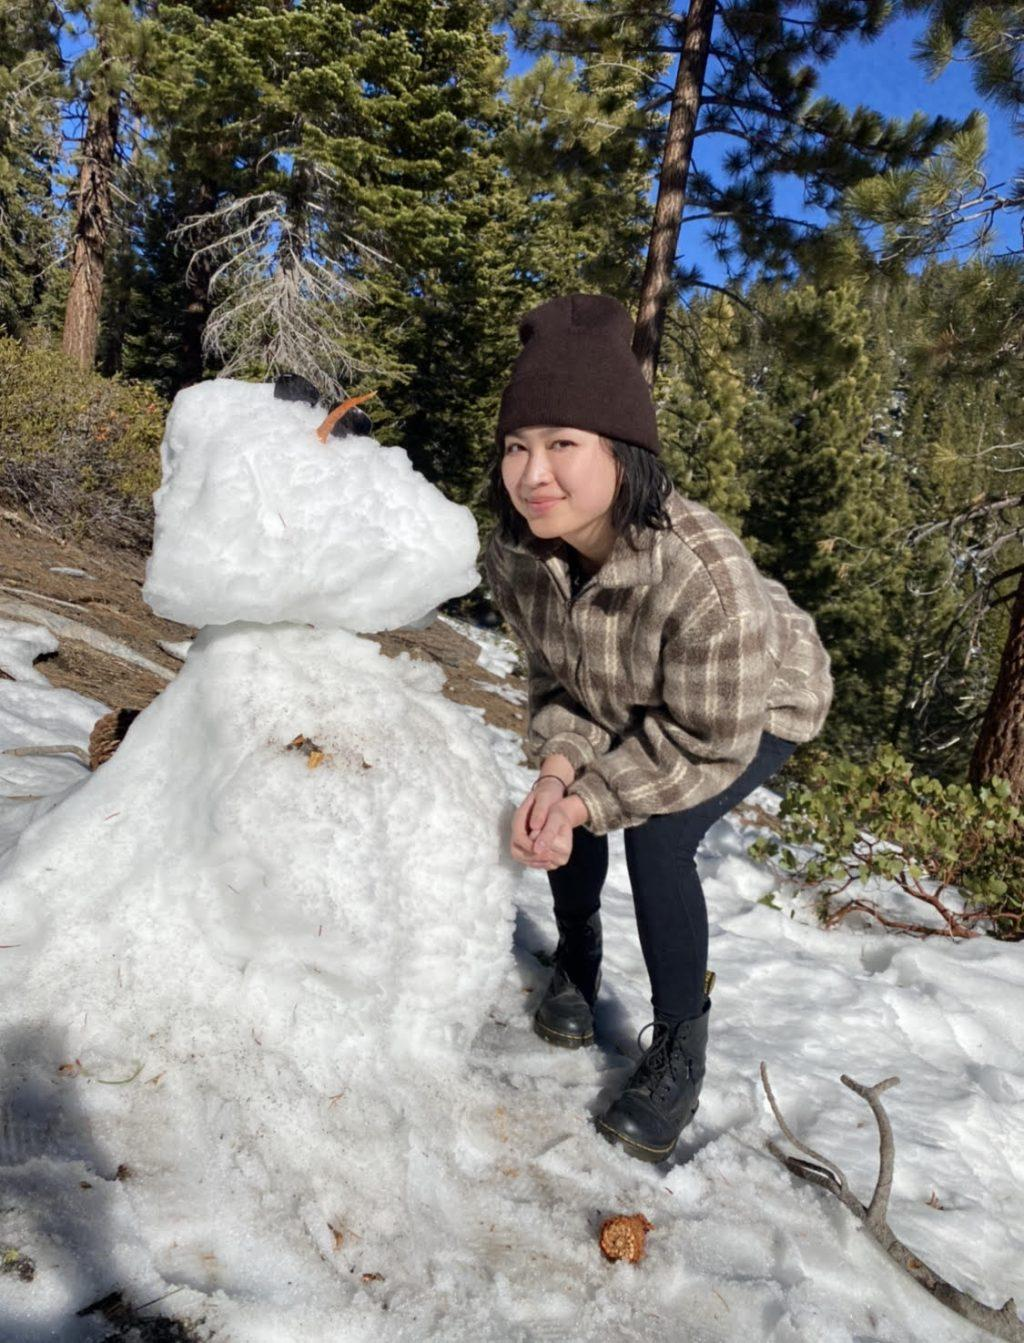 Chan poses with a snowman she found while hiking in Lake Tahoe, Calif., in January. Chan said she wanted to make the move from Northern California to Southern California for a chance to enjoy warmer weather.